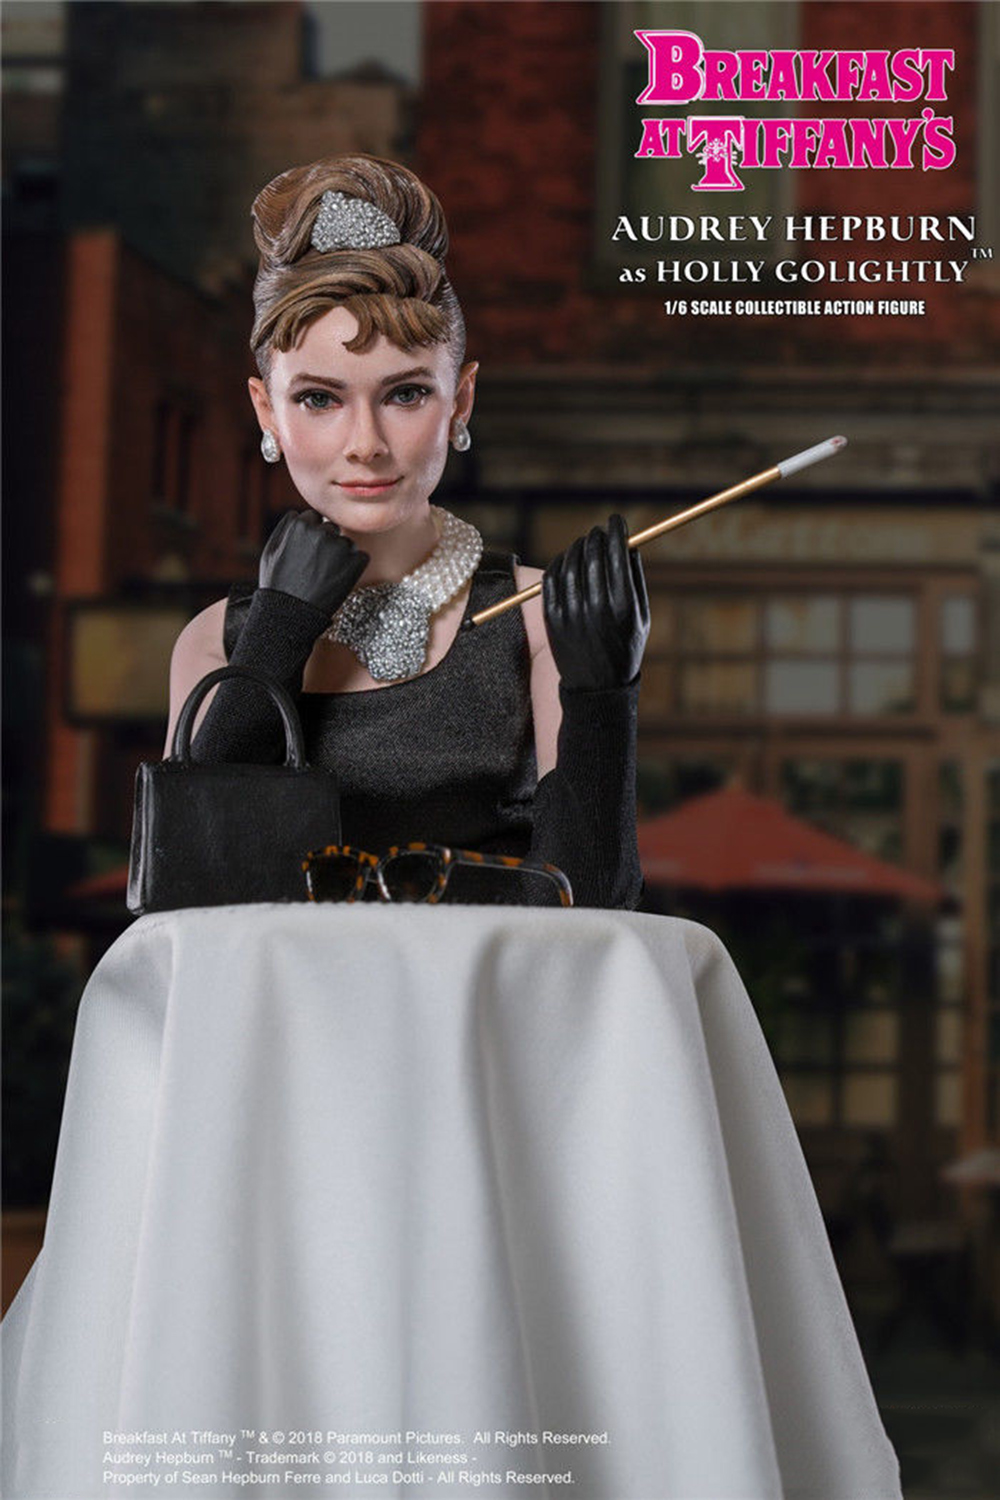 Full set action figure STAR ACE TOYS SA0051 1/6 Scale Audrey Hepburn Action Figure Normal Ver. Collections 1